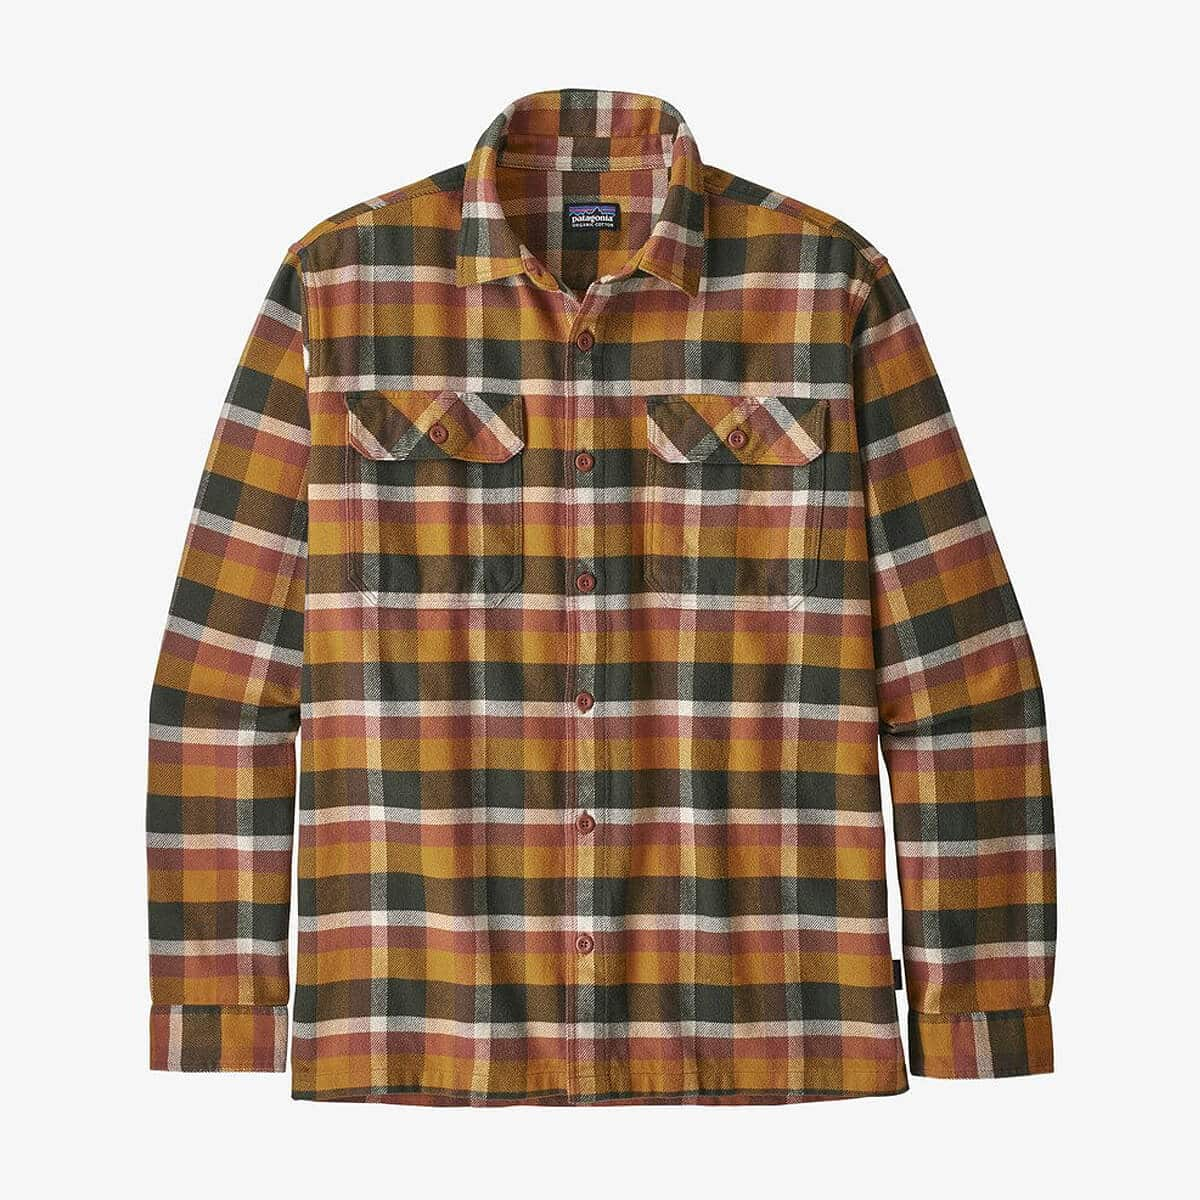 Patagonia - Men's Long-Sleeved Fjord Flannel Shirt